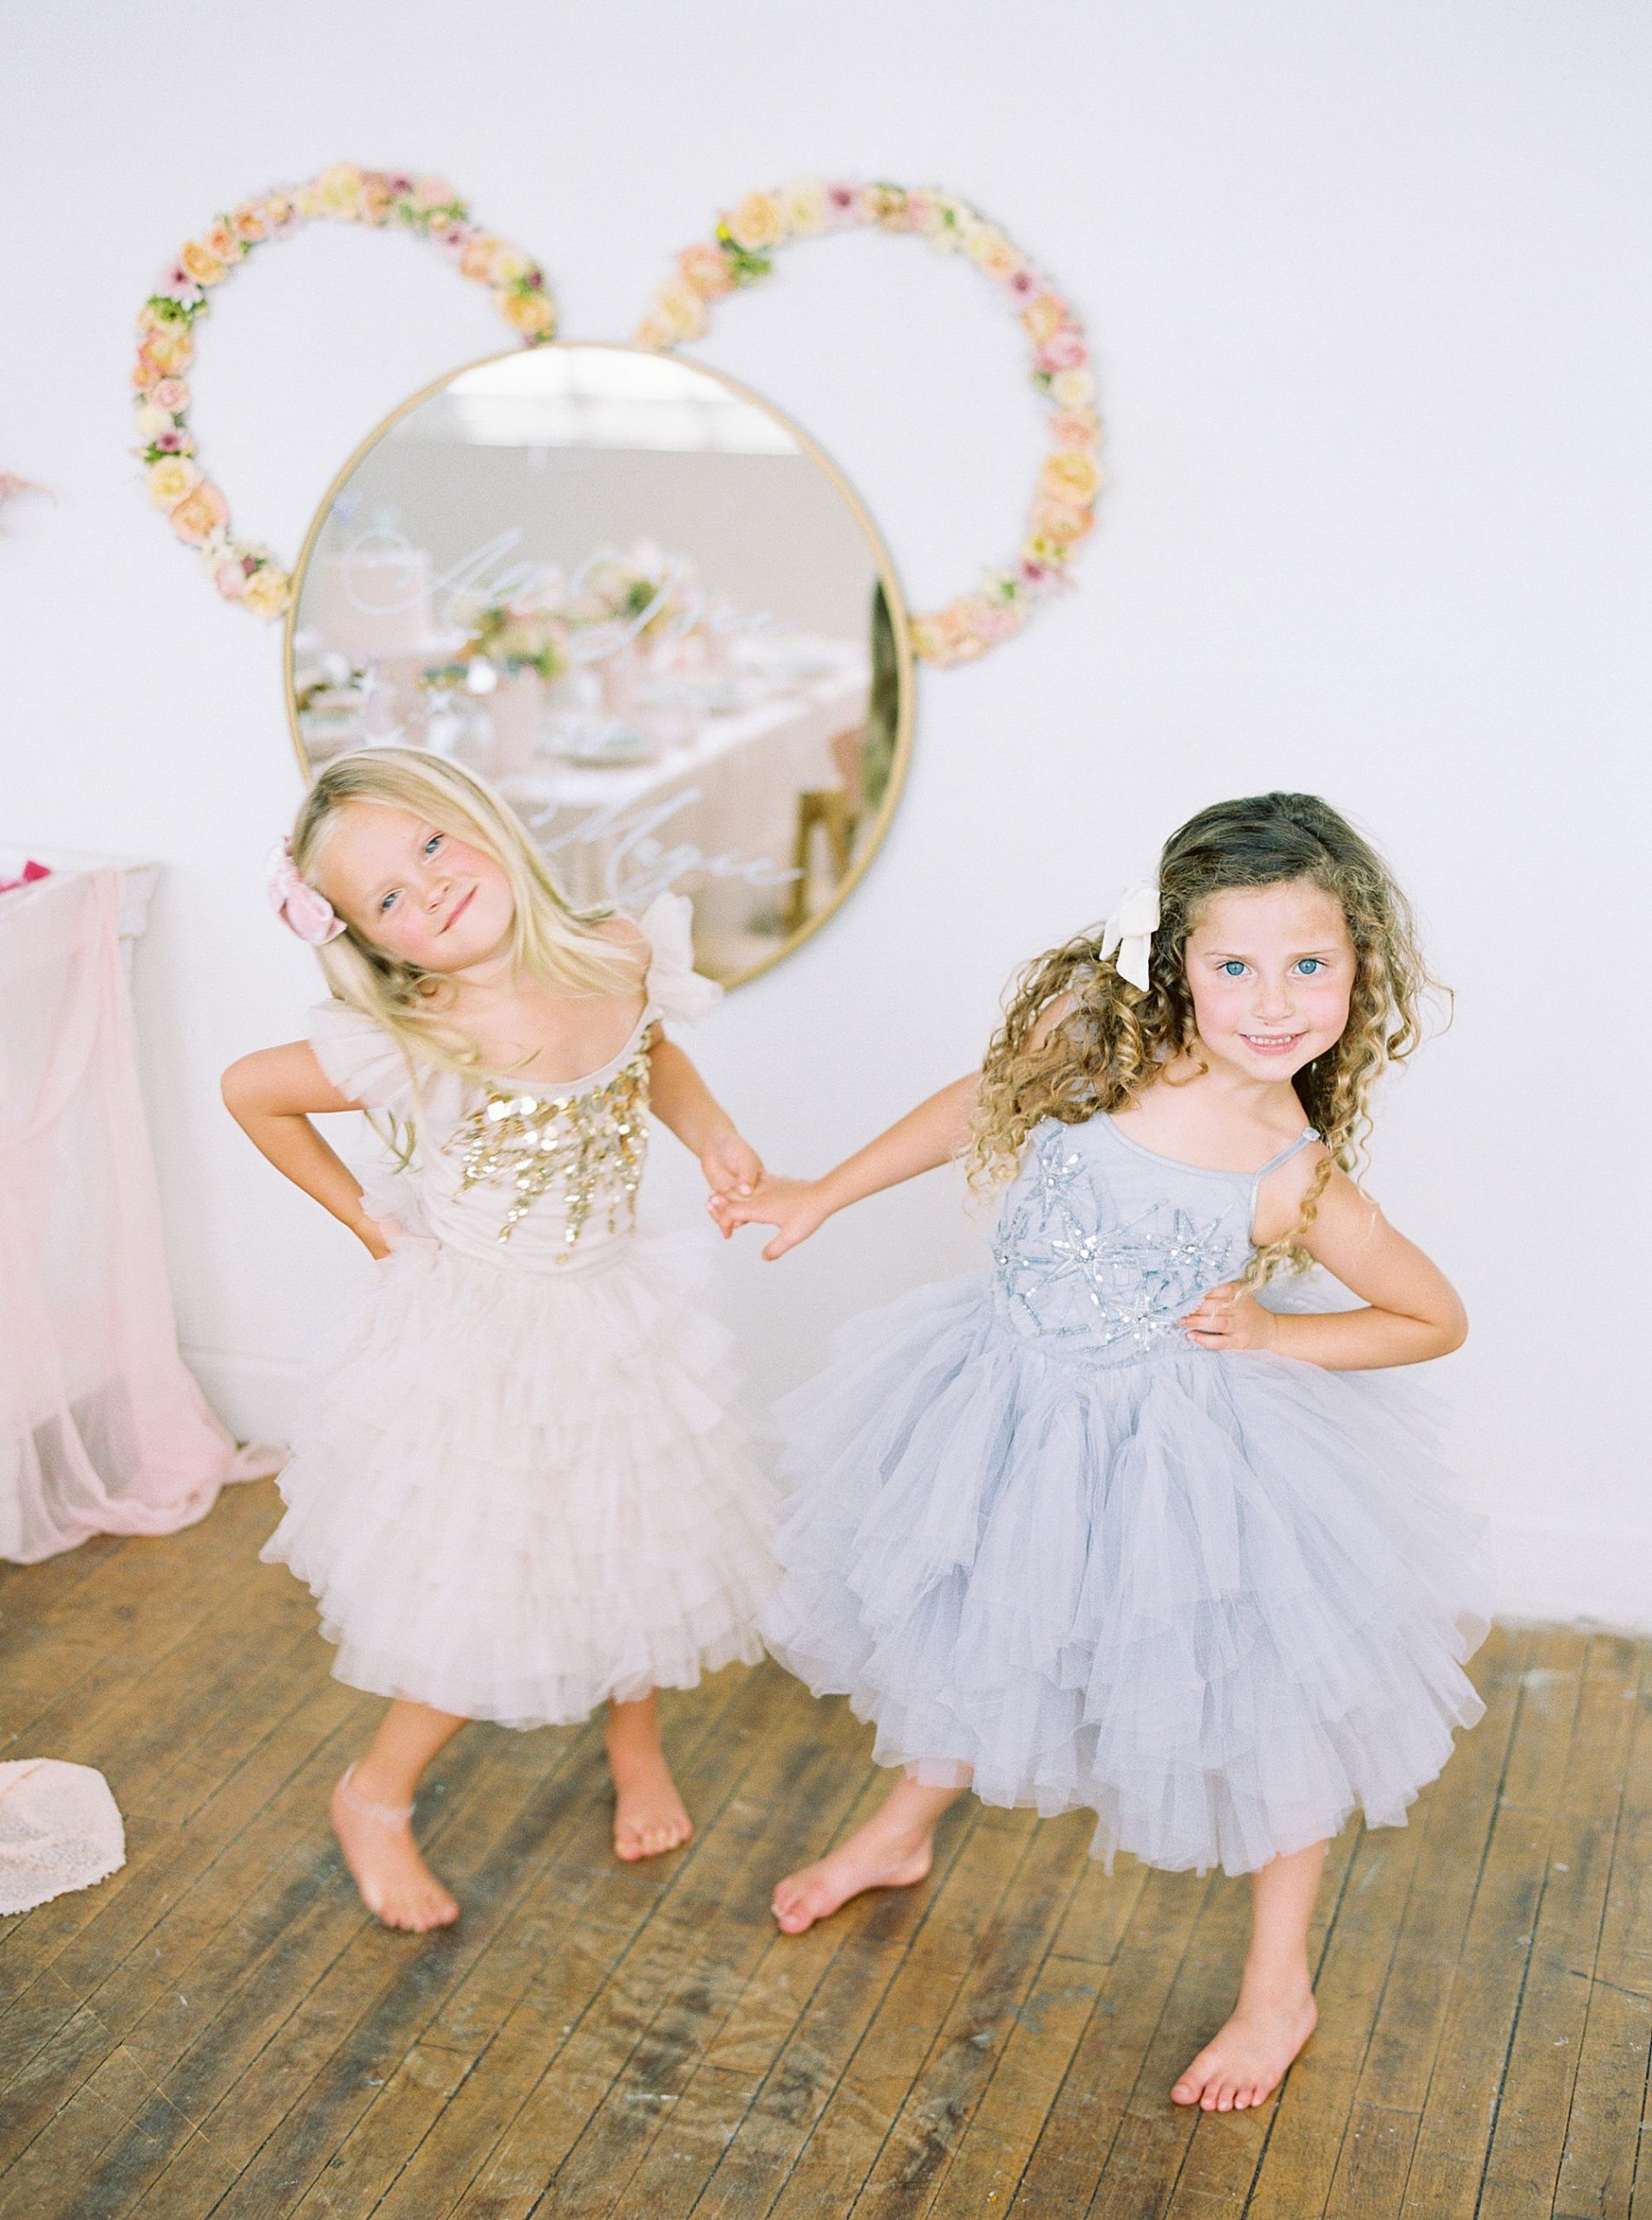 Vintage Disney Birthday Party for Princess Nora's Fourth Birthday - Featured on 100 Layer Cake - Ashley Baumgartner - Parker Grace Events_0013.jpg